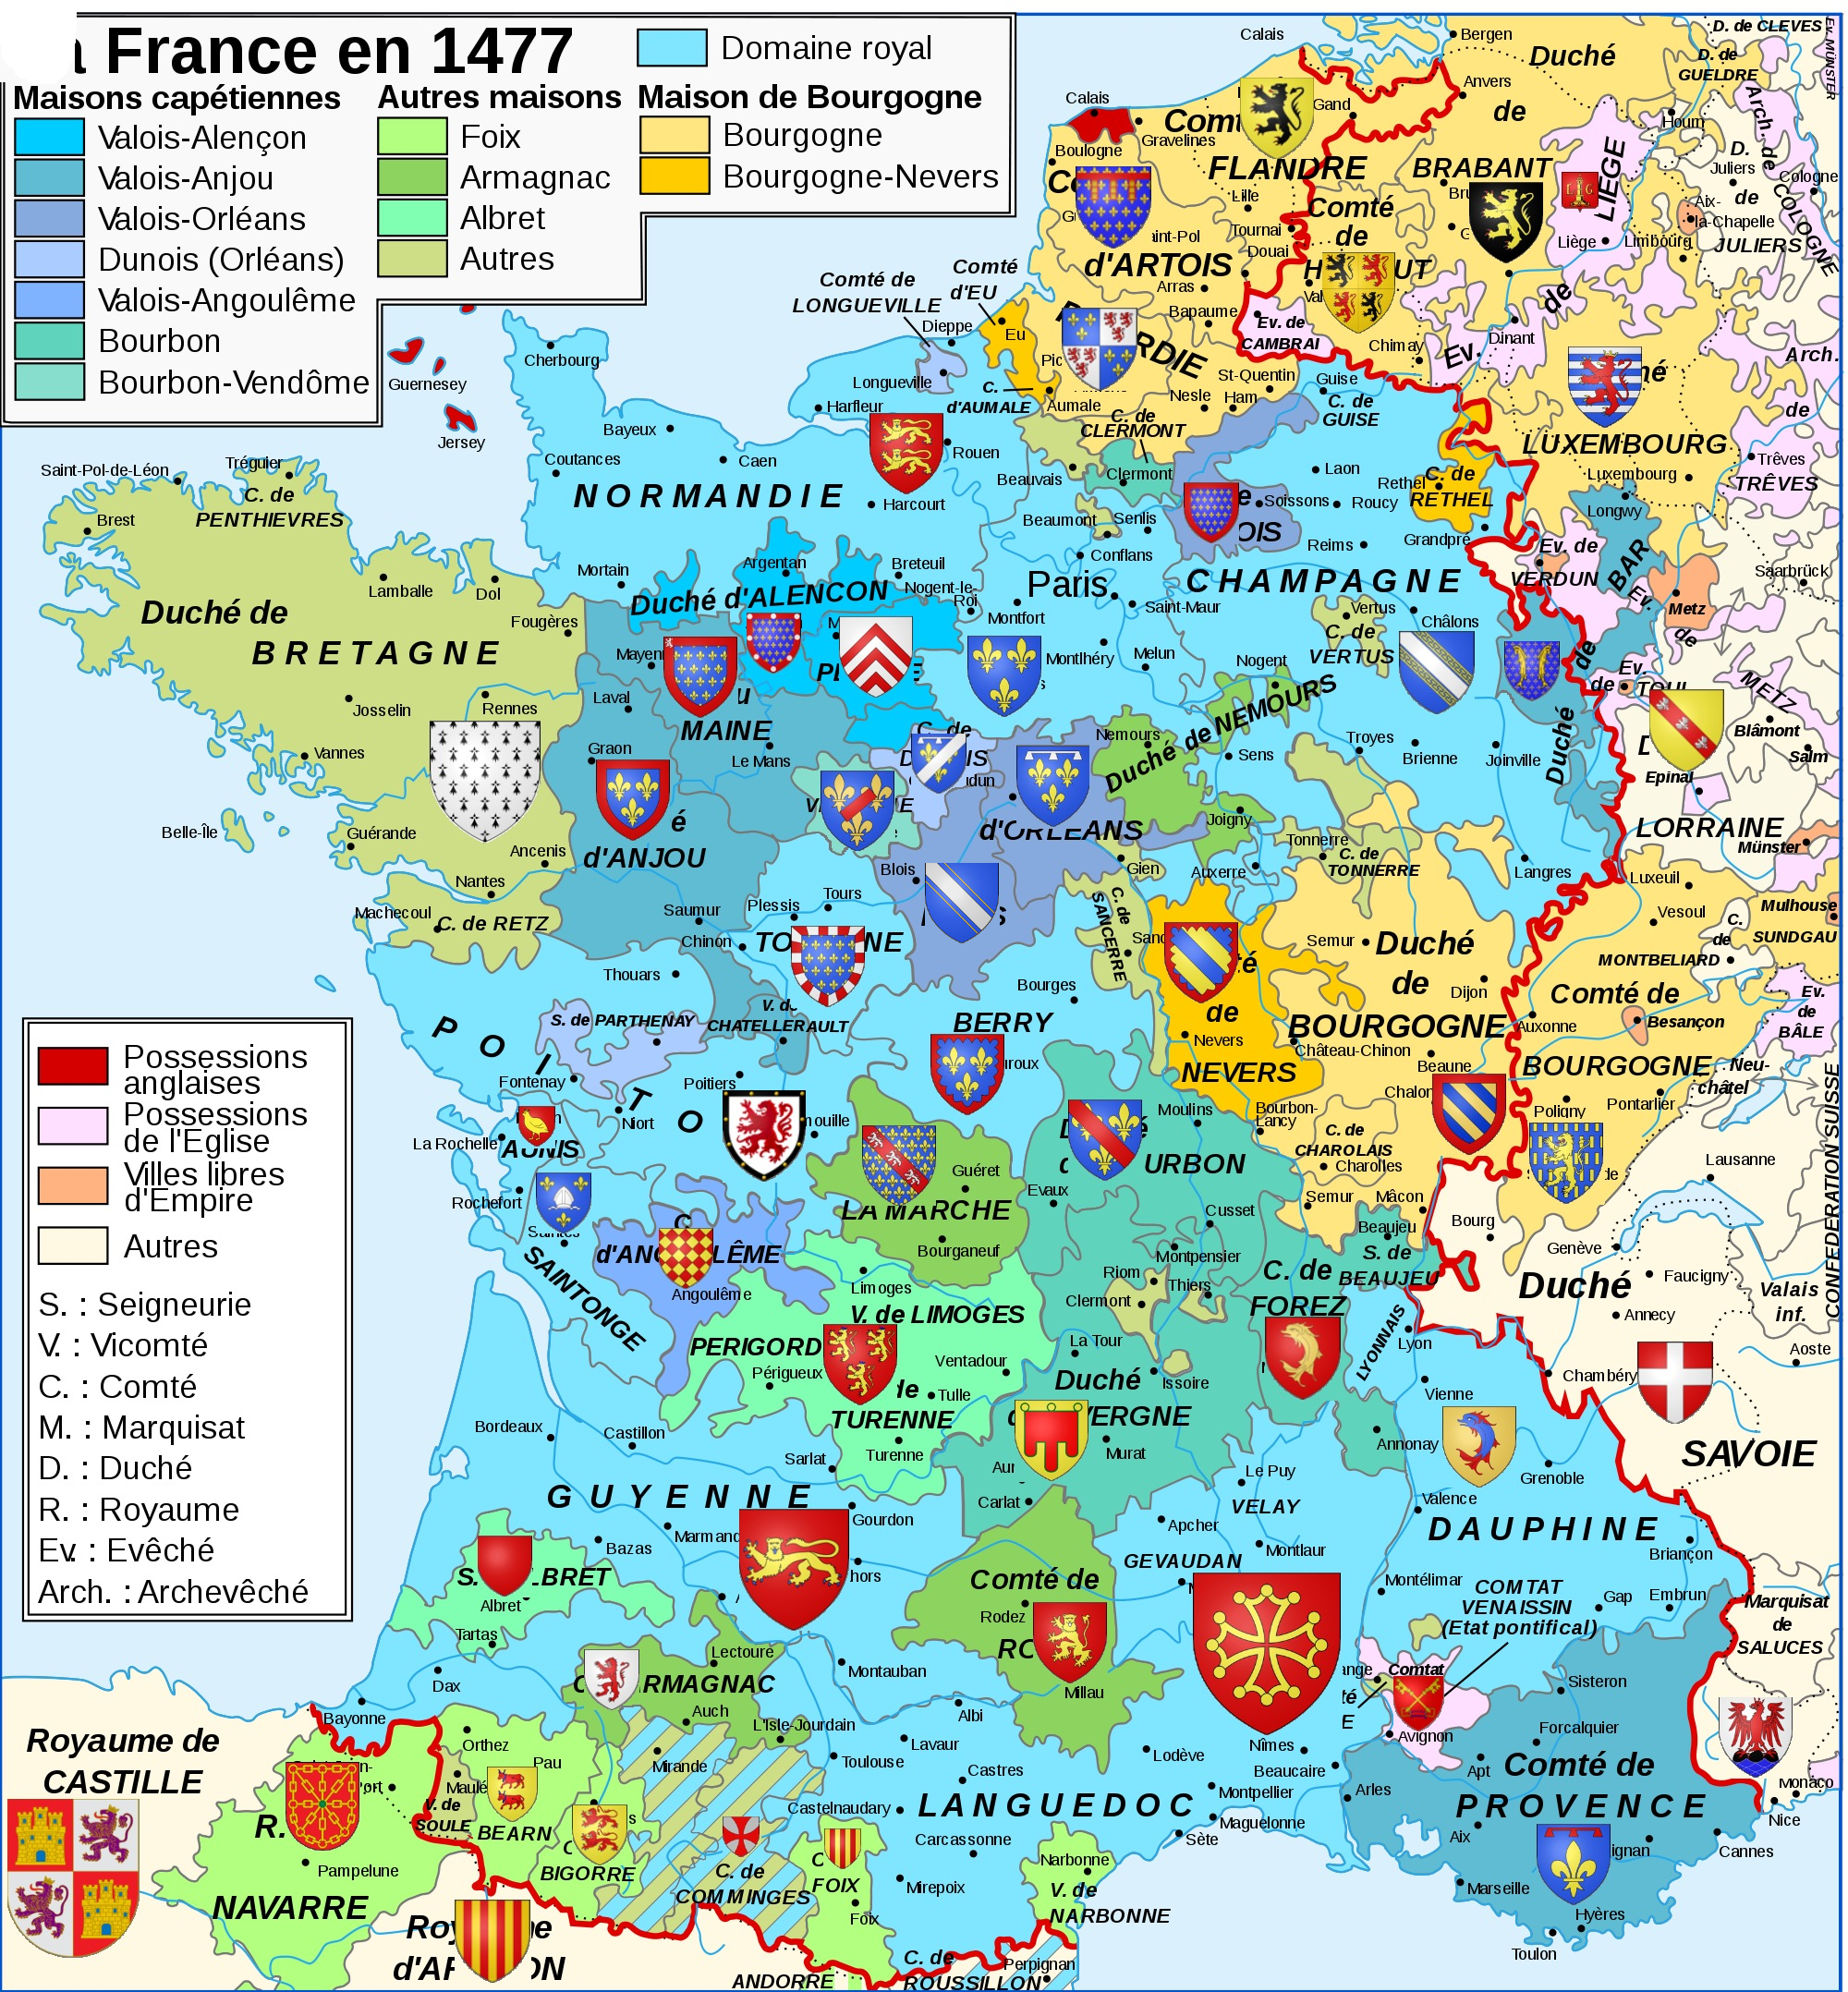 A map of France and its neighbours in 1477 (in French). [2000 × 2156]